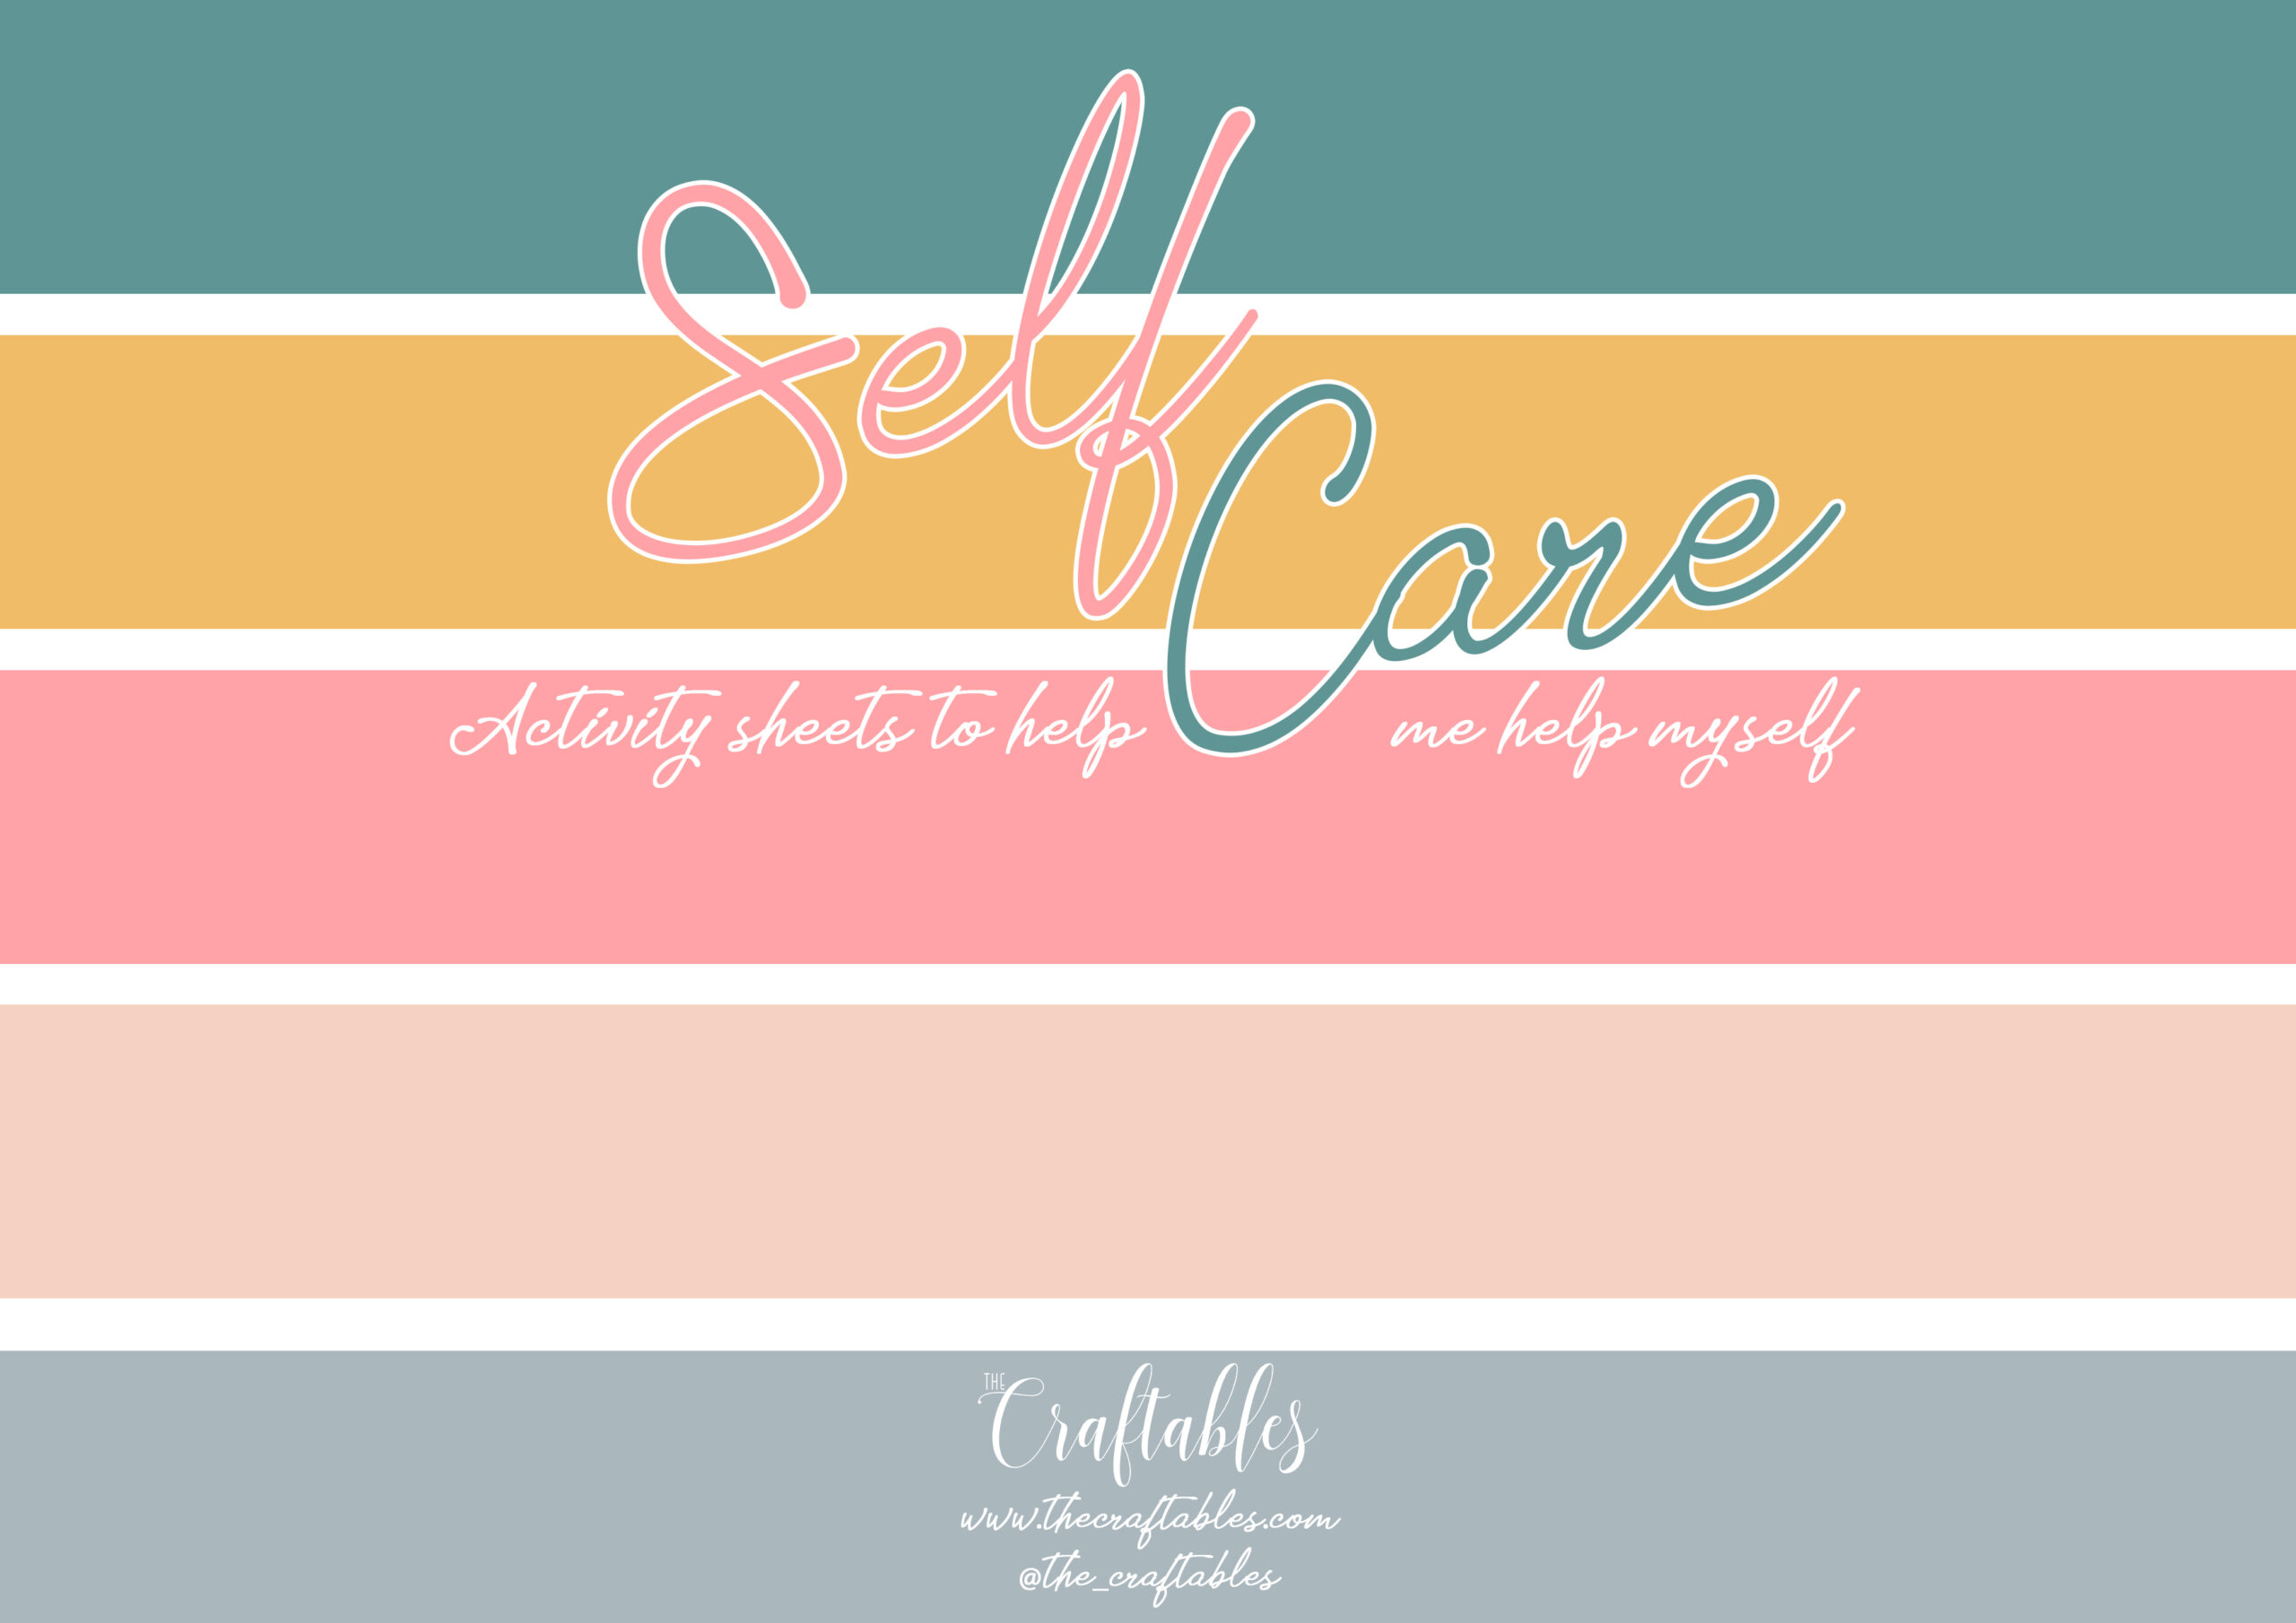 Self Care Kit | Activity sheets to help you help yourself by The Craftables | page 1 - Cover